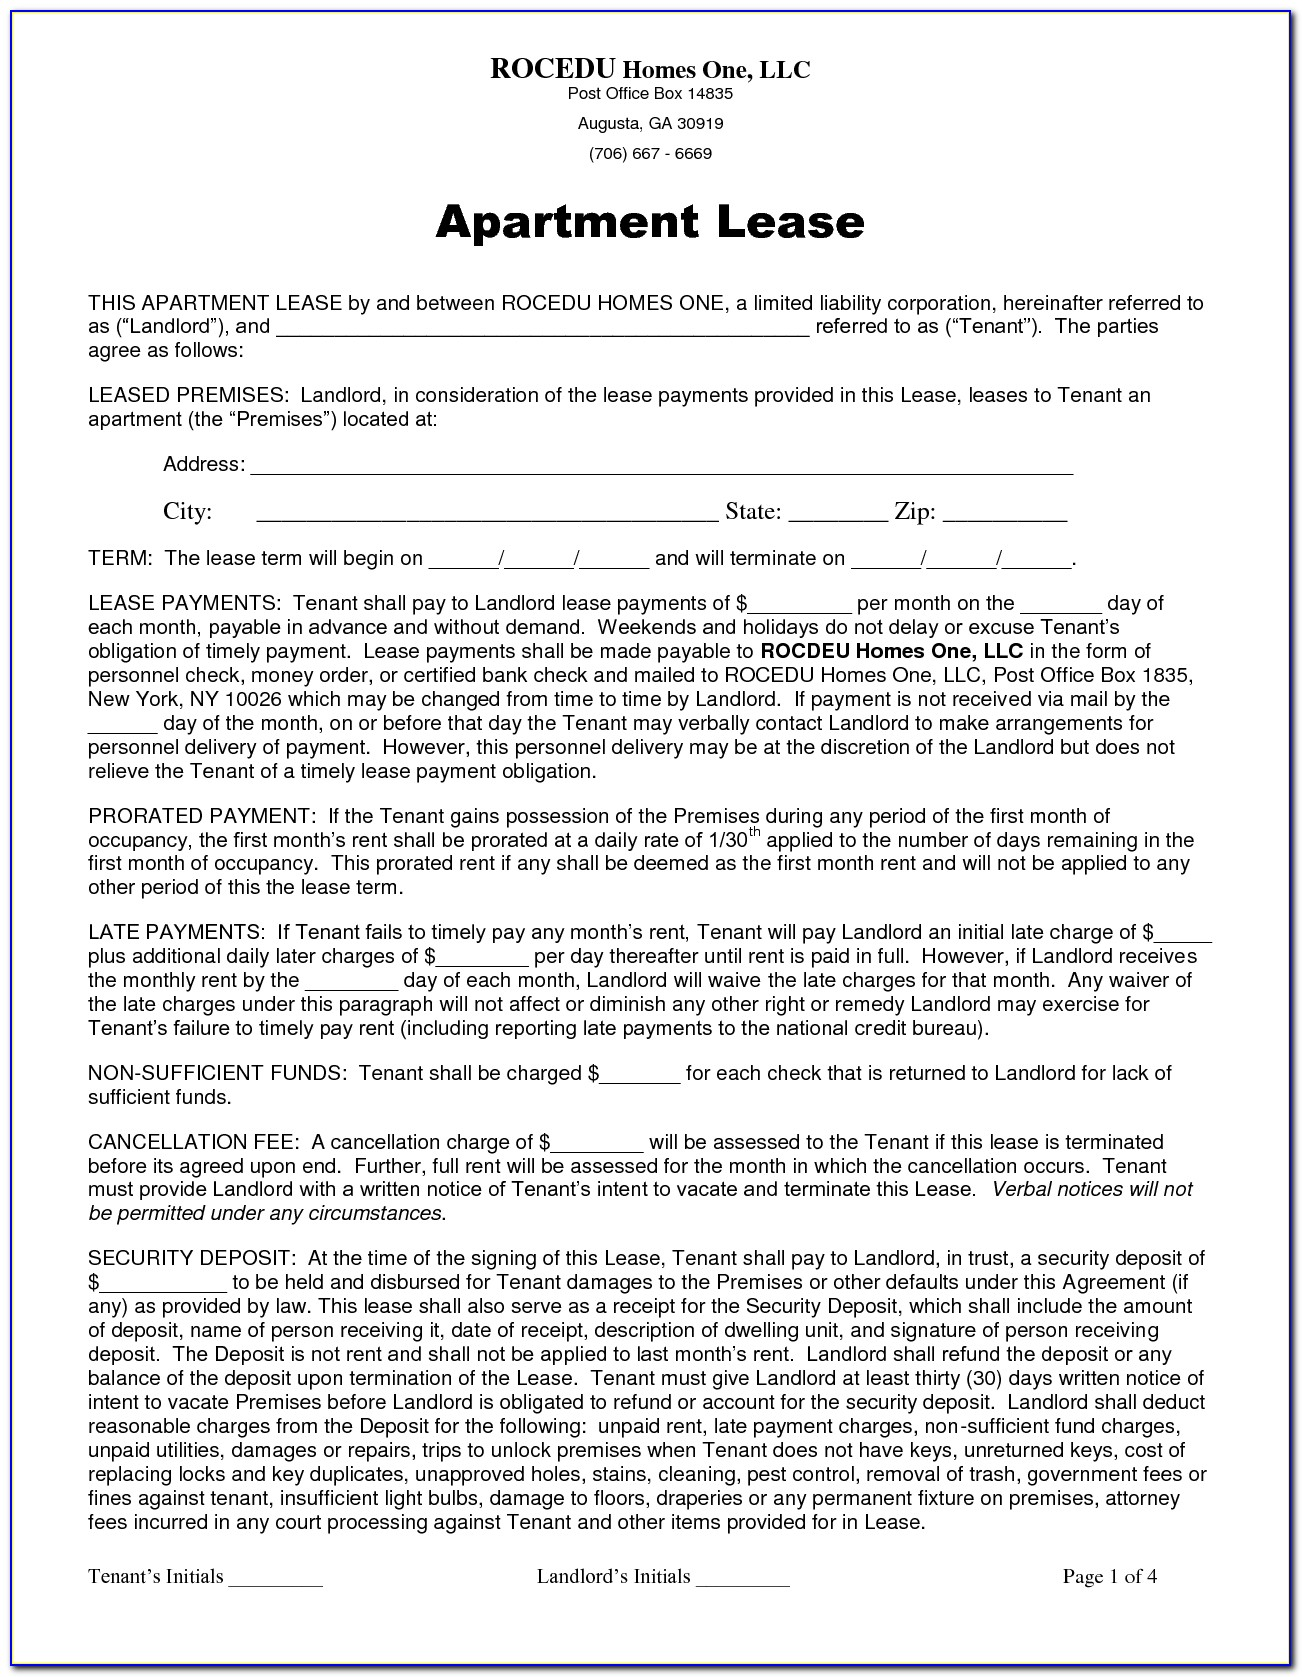 Apartment Lease Agreement Form